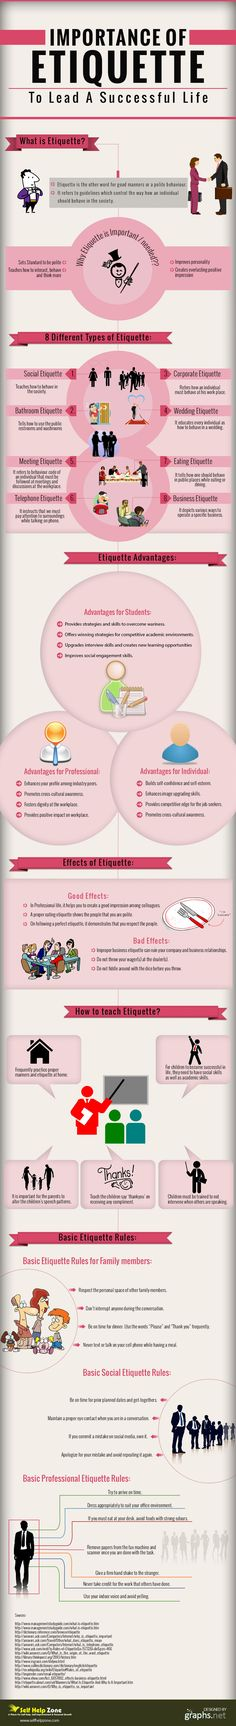 Etiquette makes people to behave in a polite manner. This info graphic provides information on different types and basic rules of etiquette.  It acts